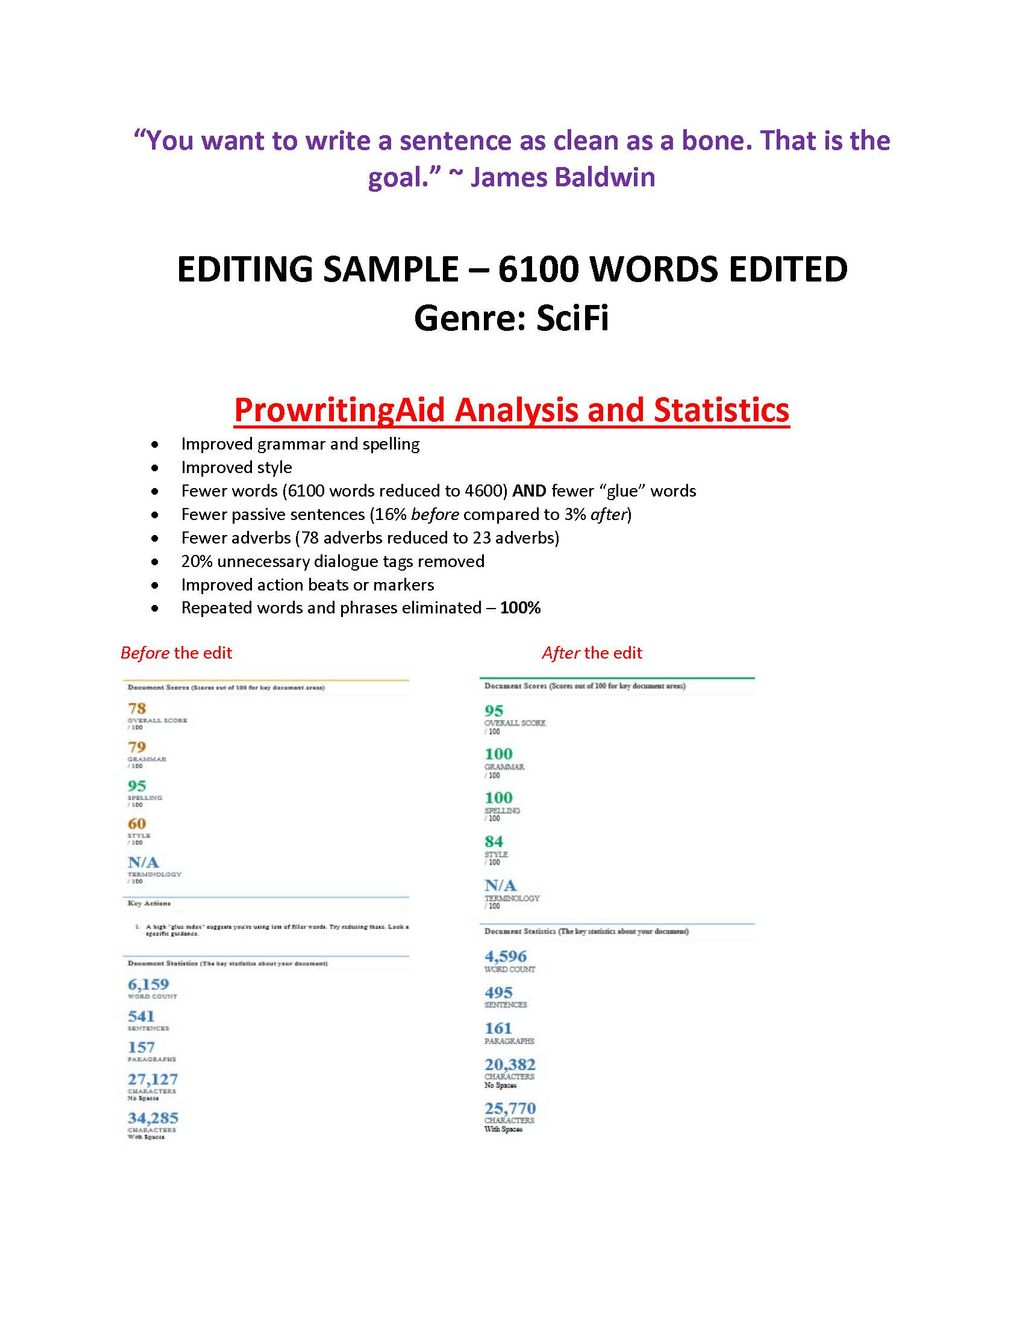 Editing Project for Fiction Writer Sample